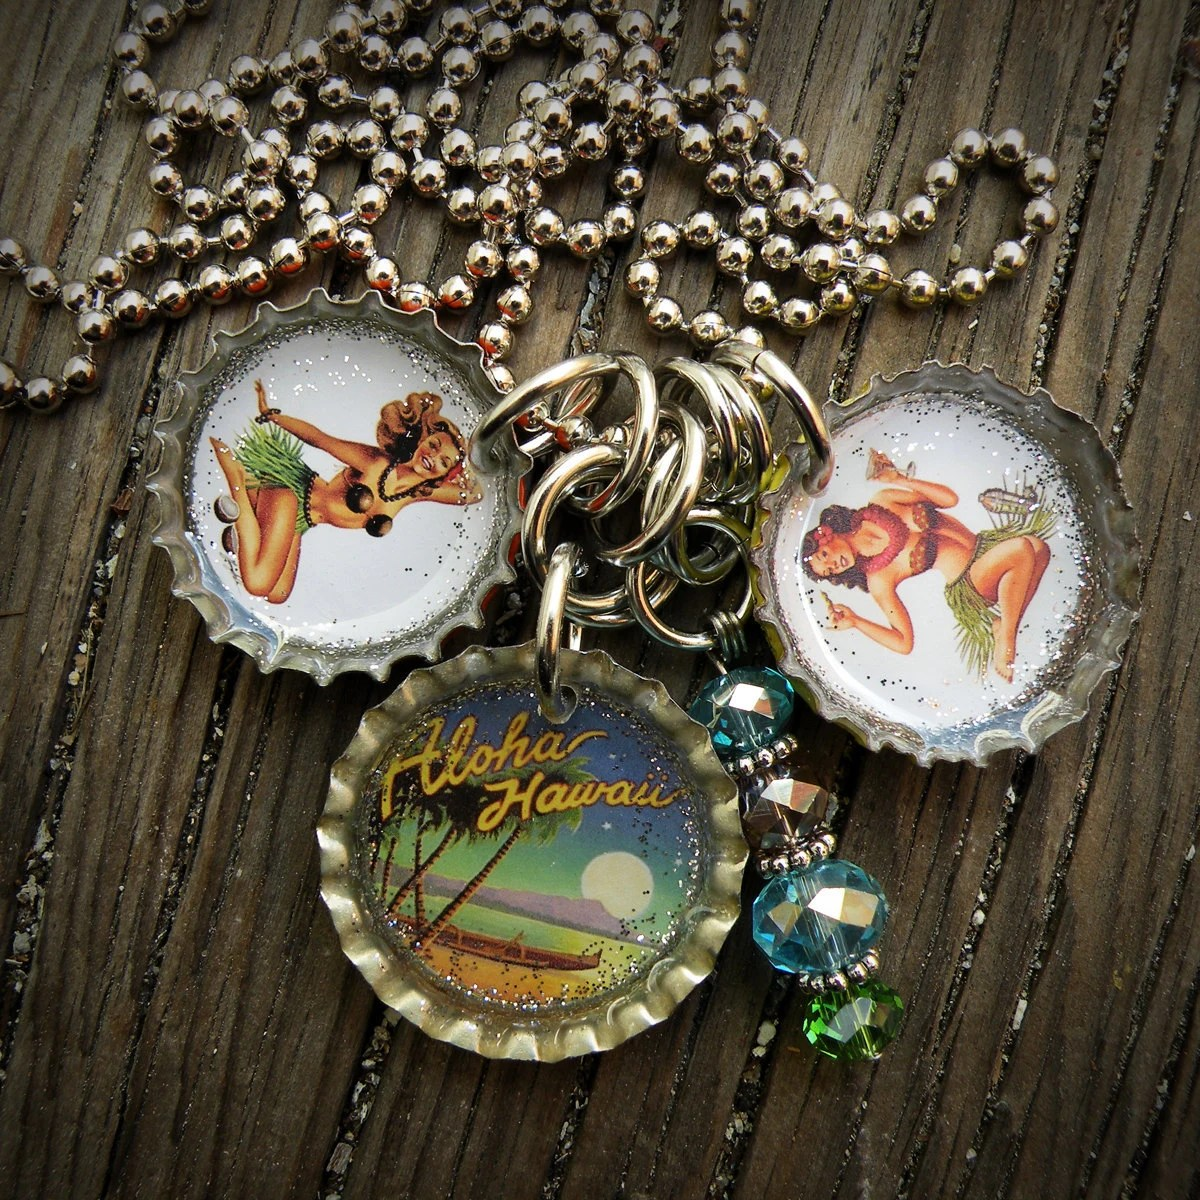 Vintage Hawaiian Pin Up Girl Bottle Cap Necklace - betsysdrawers